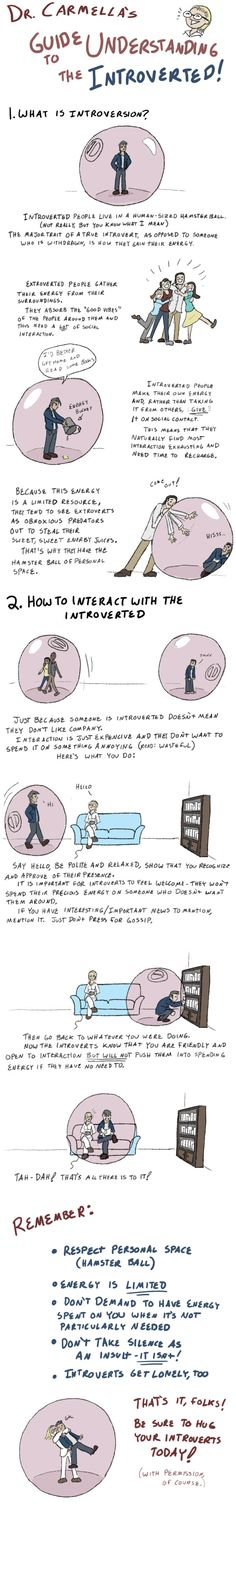 Guide to Introversion